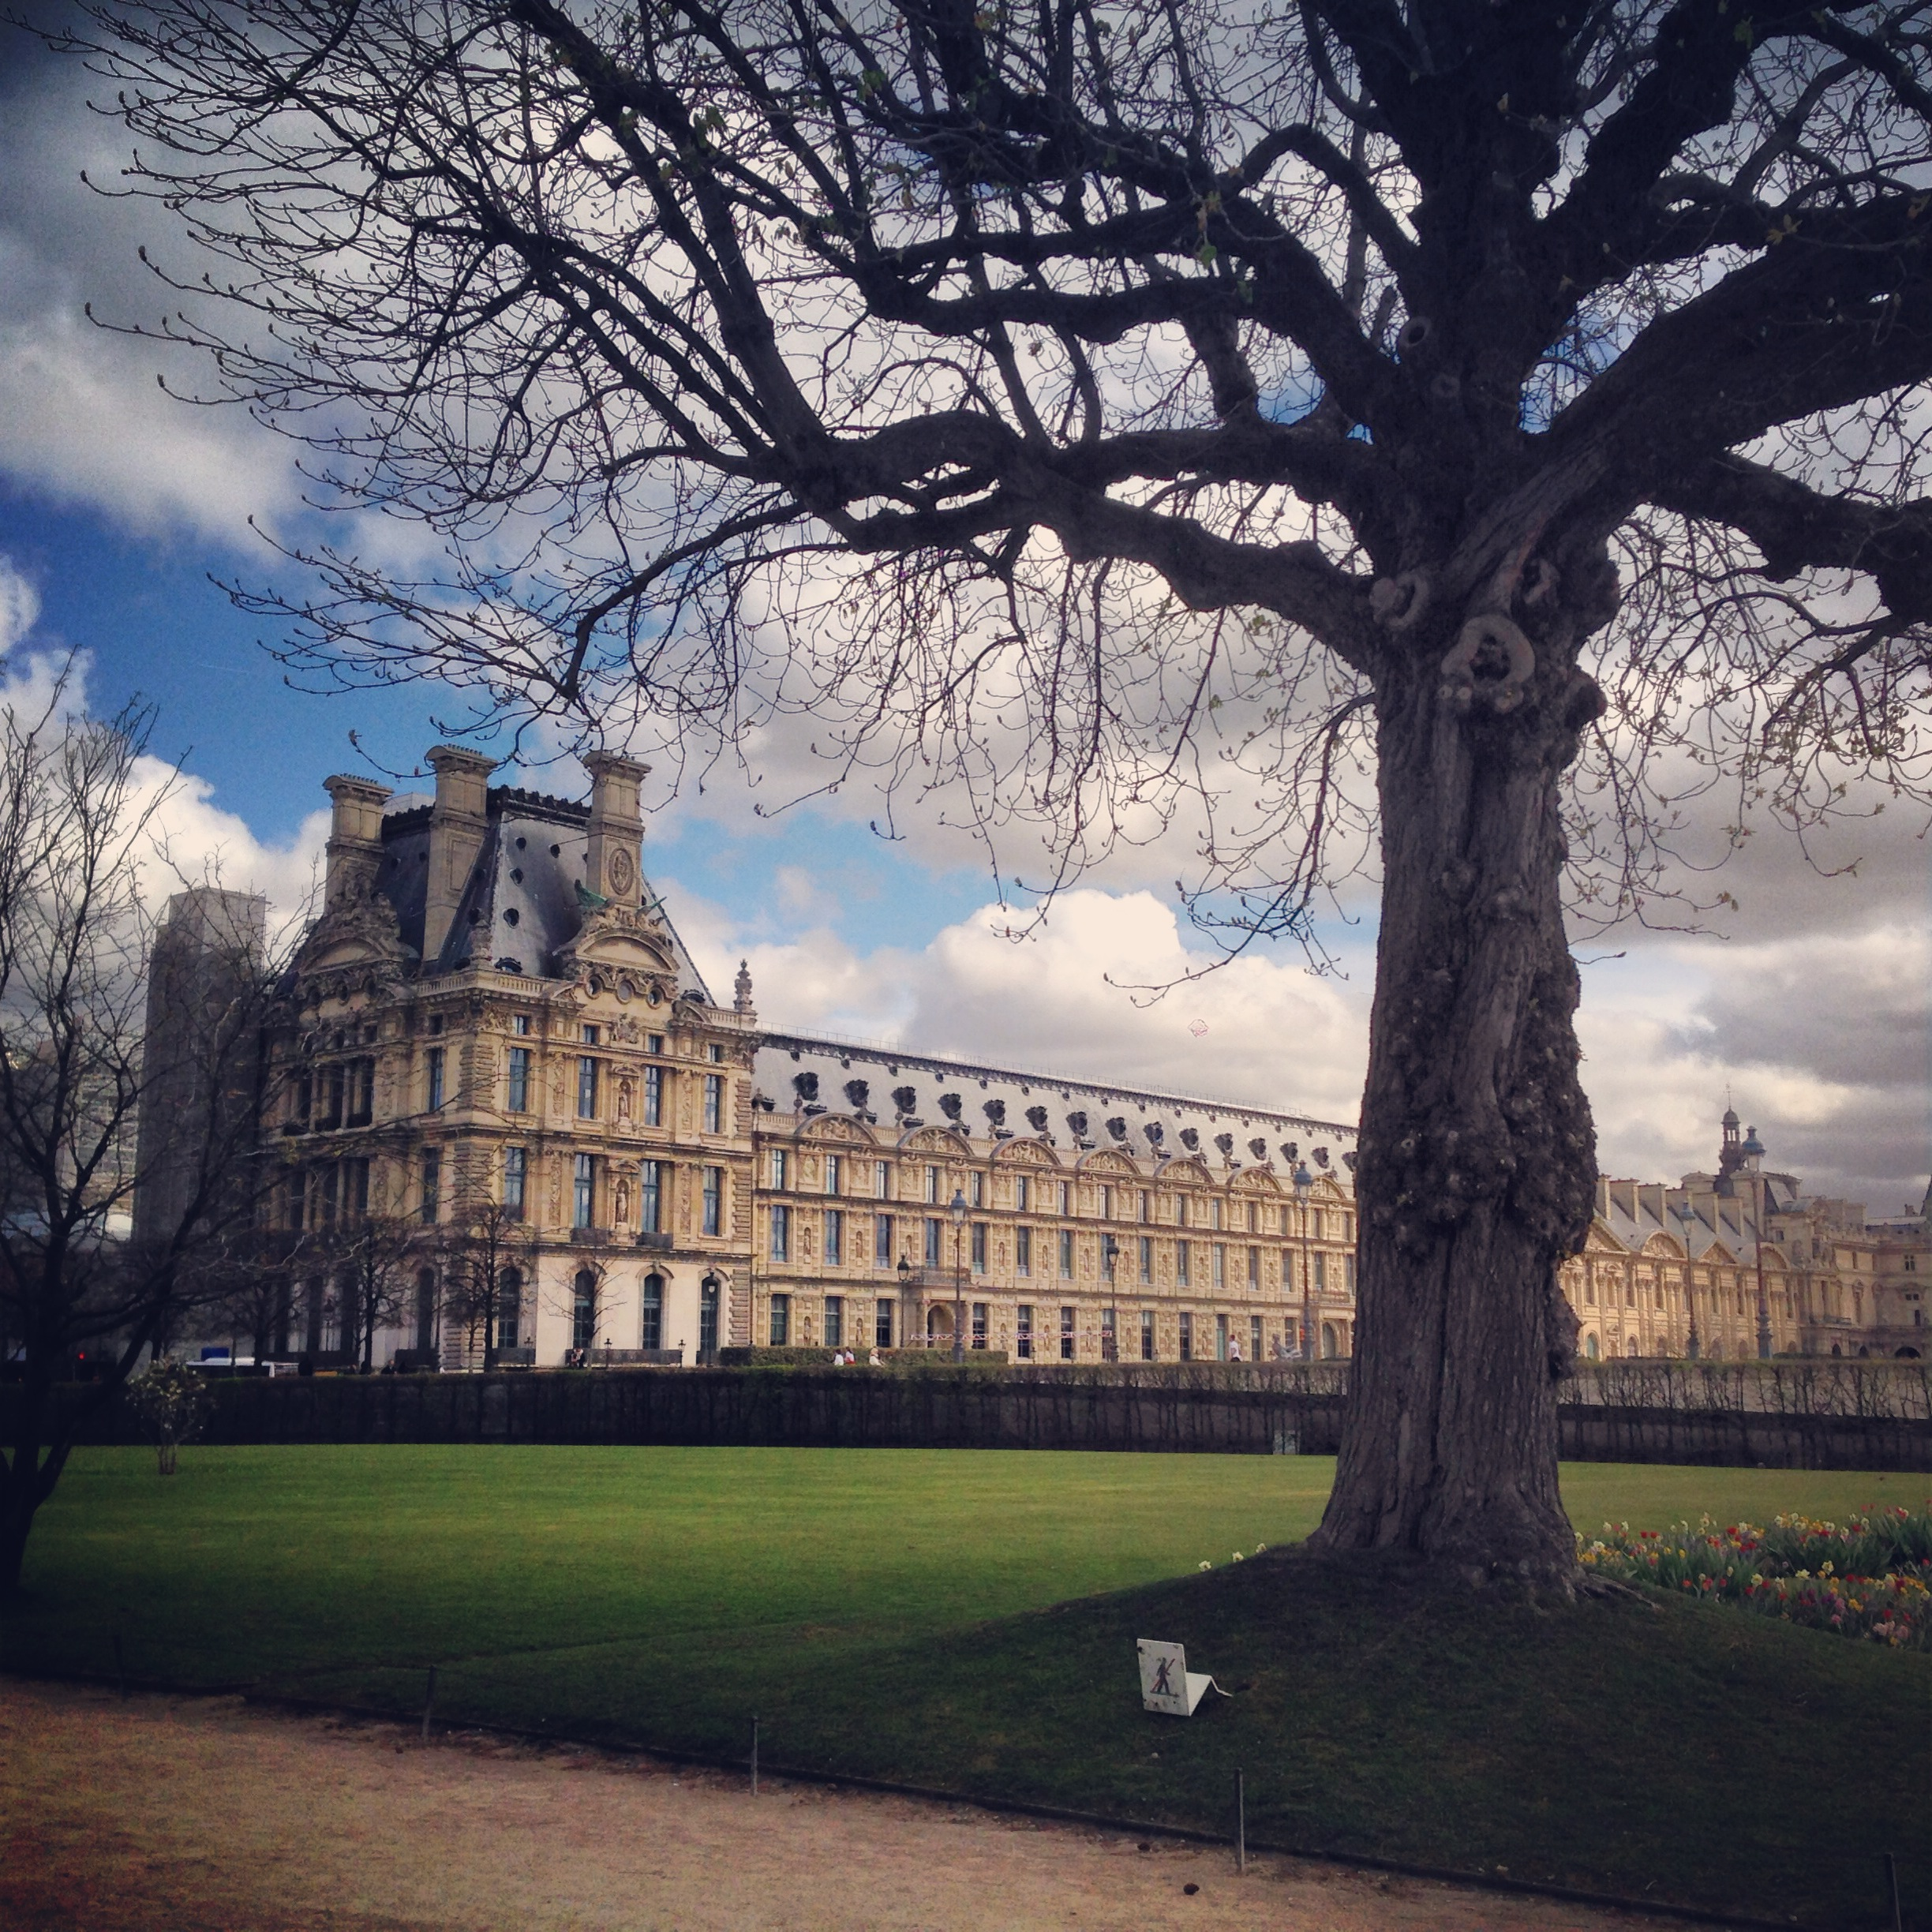 Les Tuileries in Paris